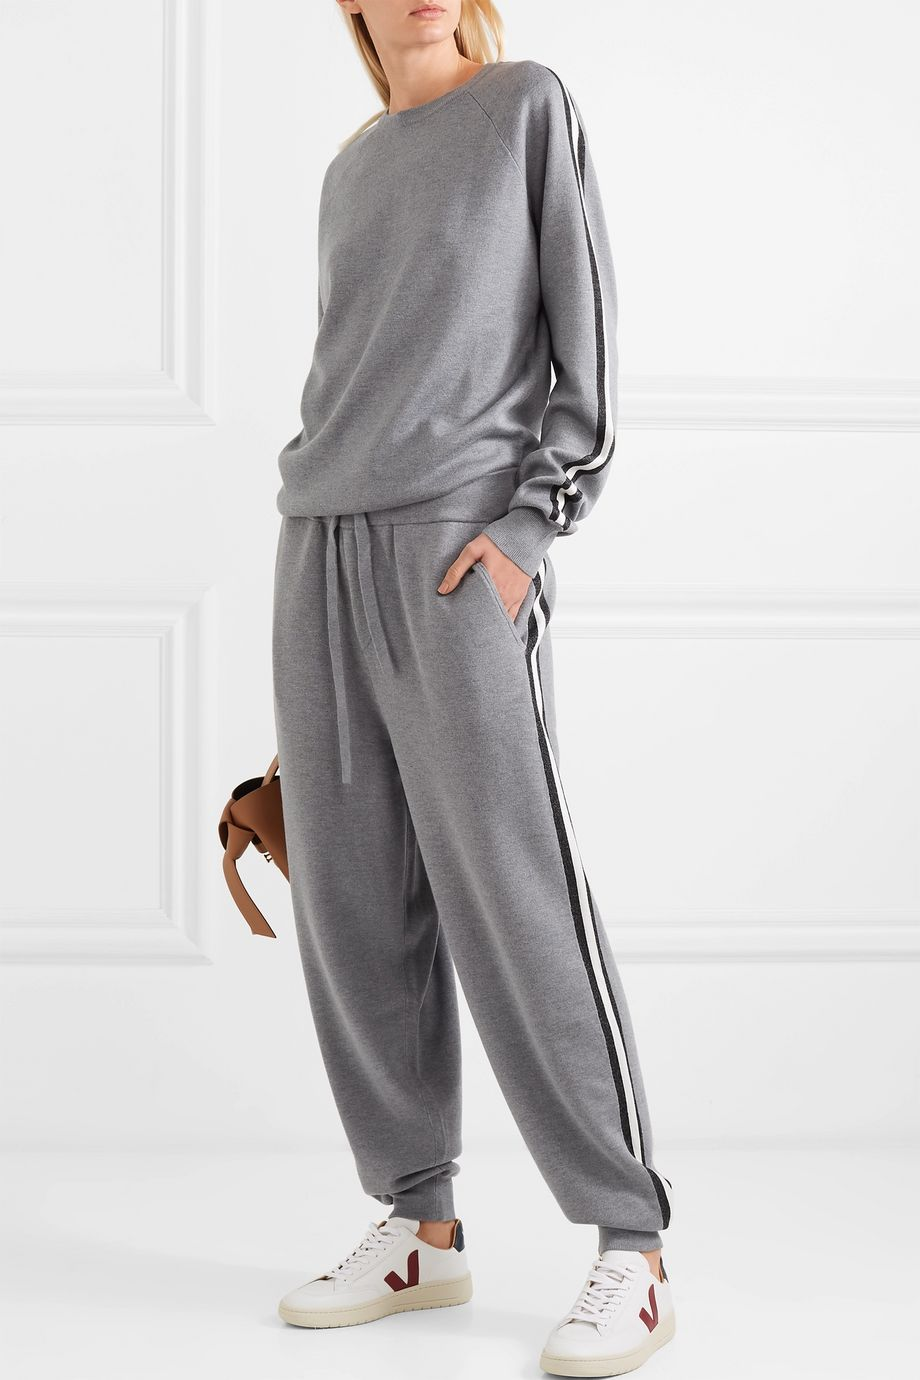 Olivia von Halle Missy London striped silk and cashmere-blend sweatshirt and track pants set